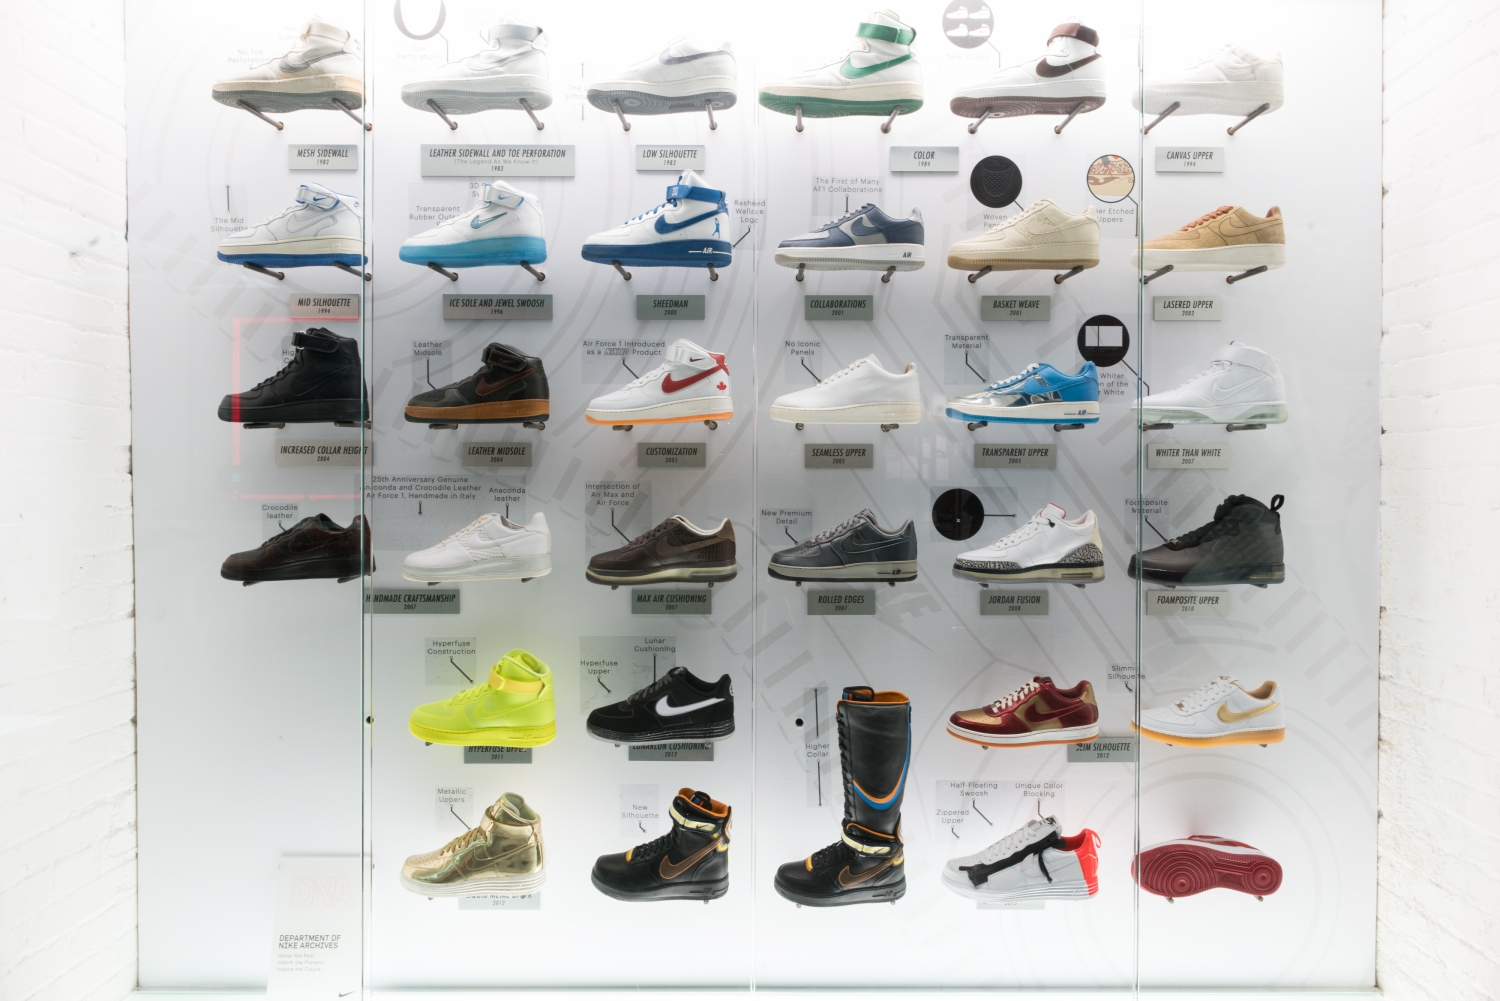 buy online d7a7f 6ab9d Take a tour of the pop-up via the images below and be sure to stop by the  Spadina Toronto Livestock location if you re in town for the 2016 NBA All- Star ...